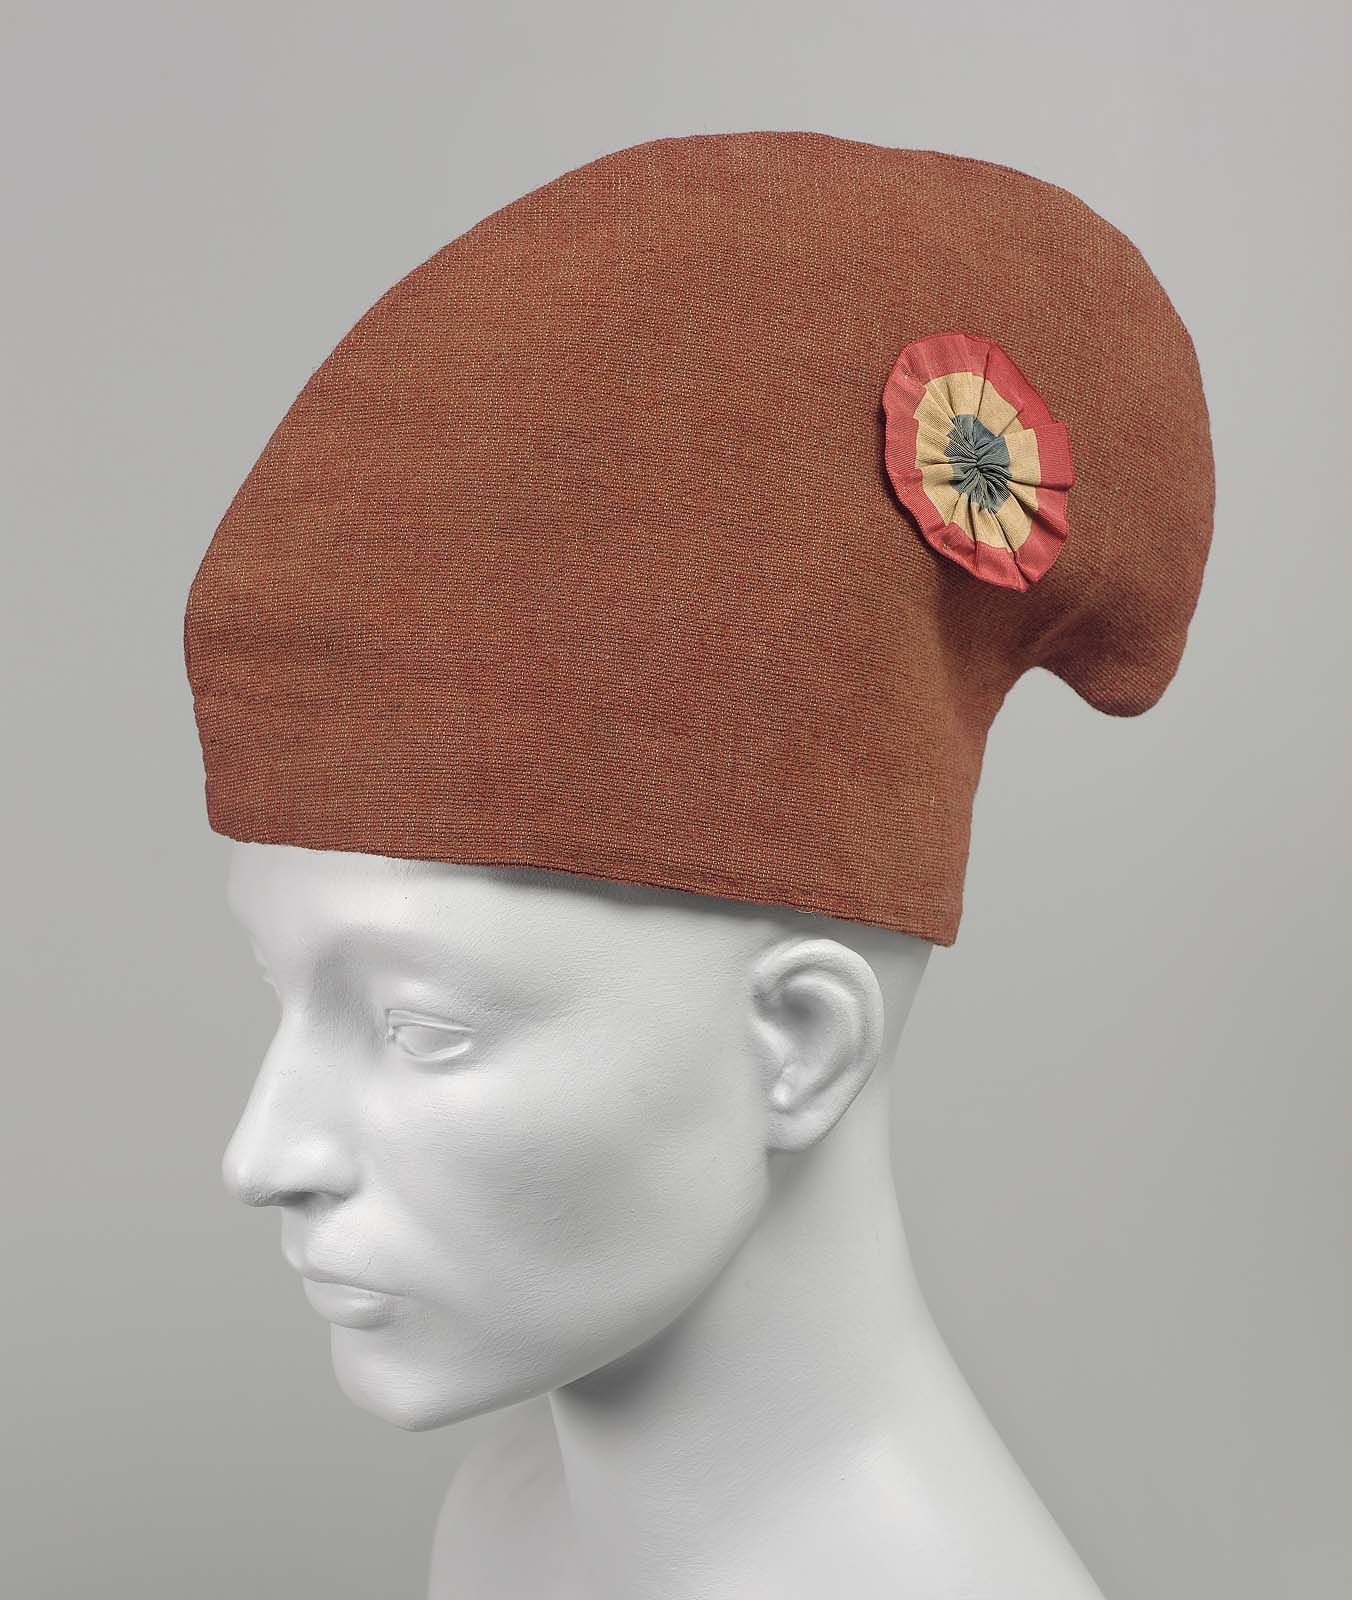 772ddb57e84 This is a photo of a French phrygian cap from the 19th century. Phrygian  caps were made of soft woolen material. It was originally worn in ancient  Rome and ...